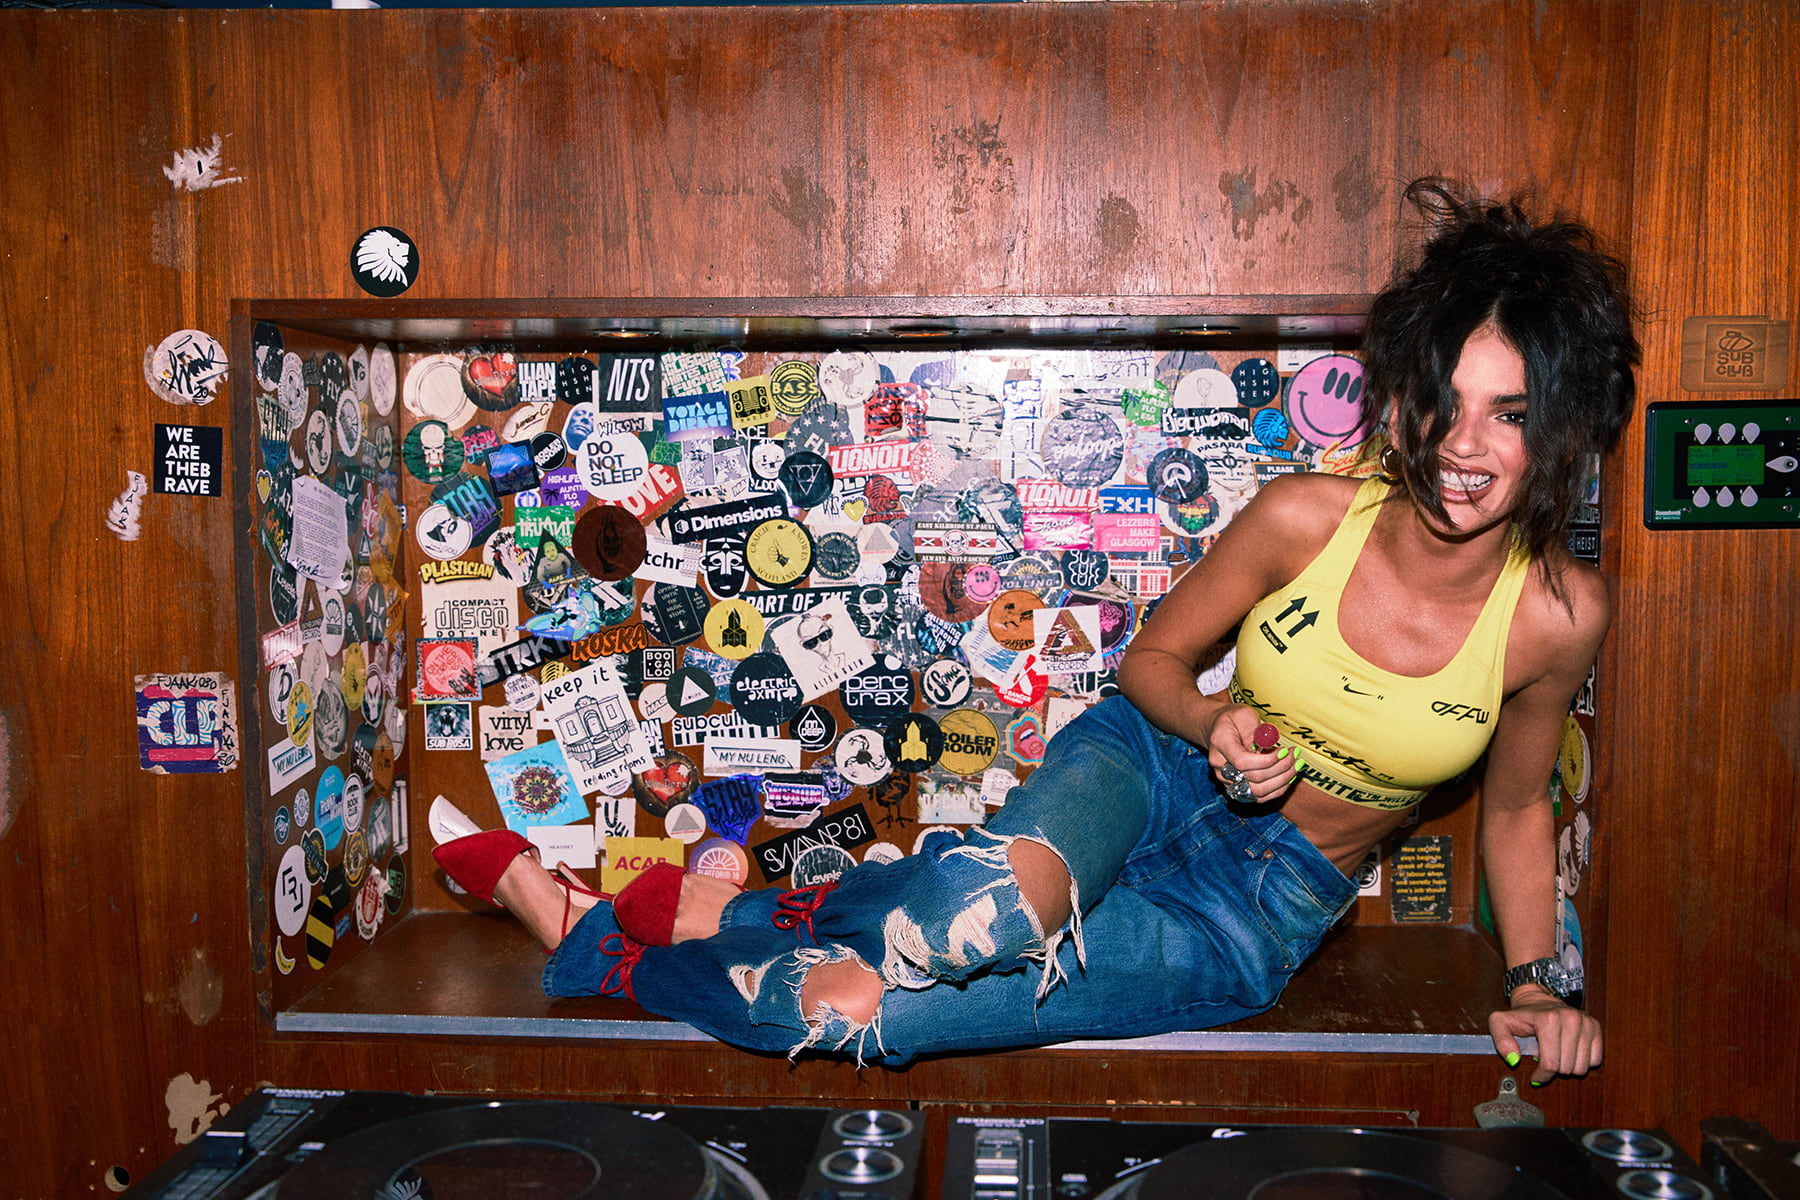 La La shot in Sub Club wearing Nike x Off-White NRG Bra and Levi's 501 jeans